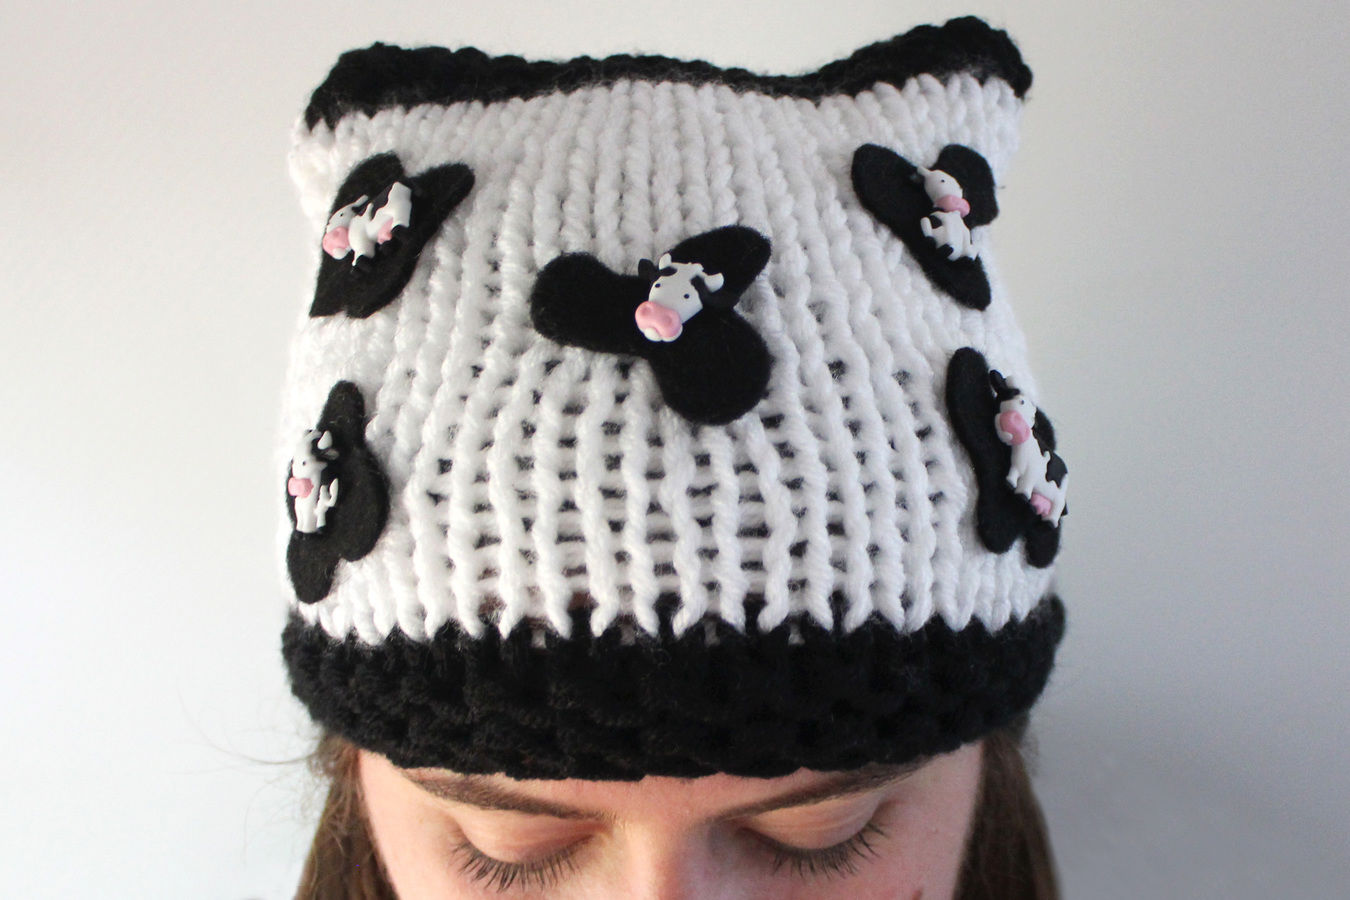 Knitted Cow Beanie - Knitting Pattern